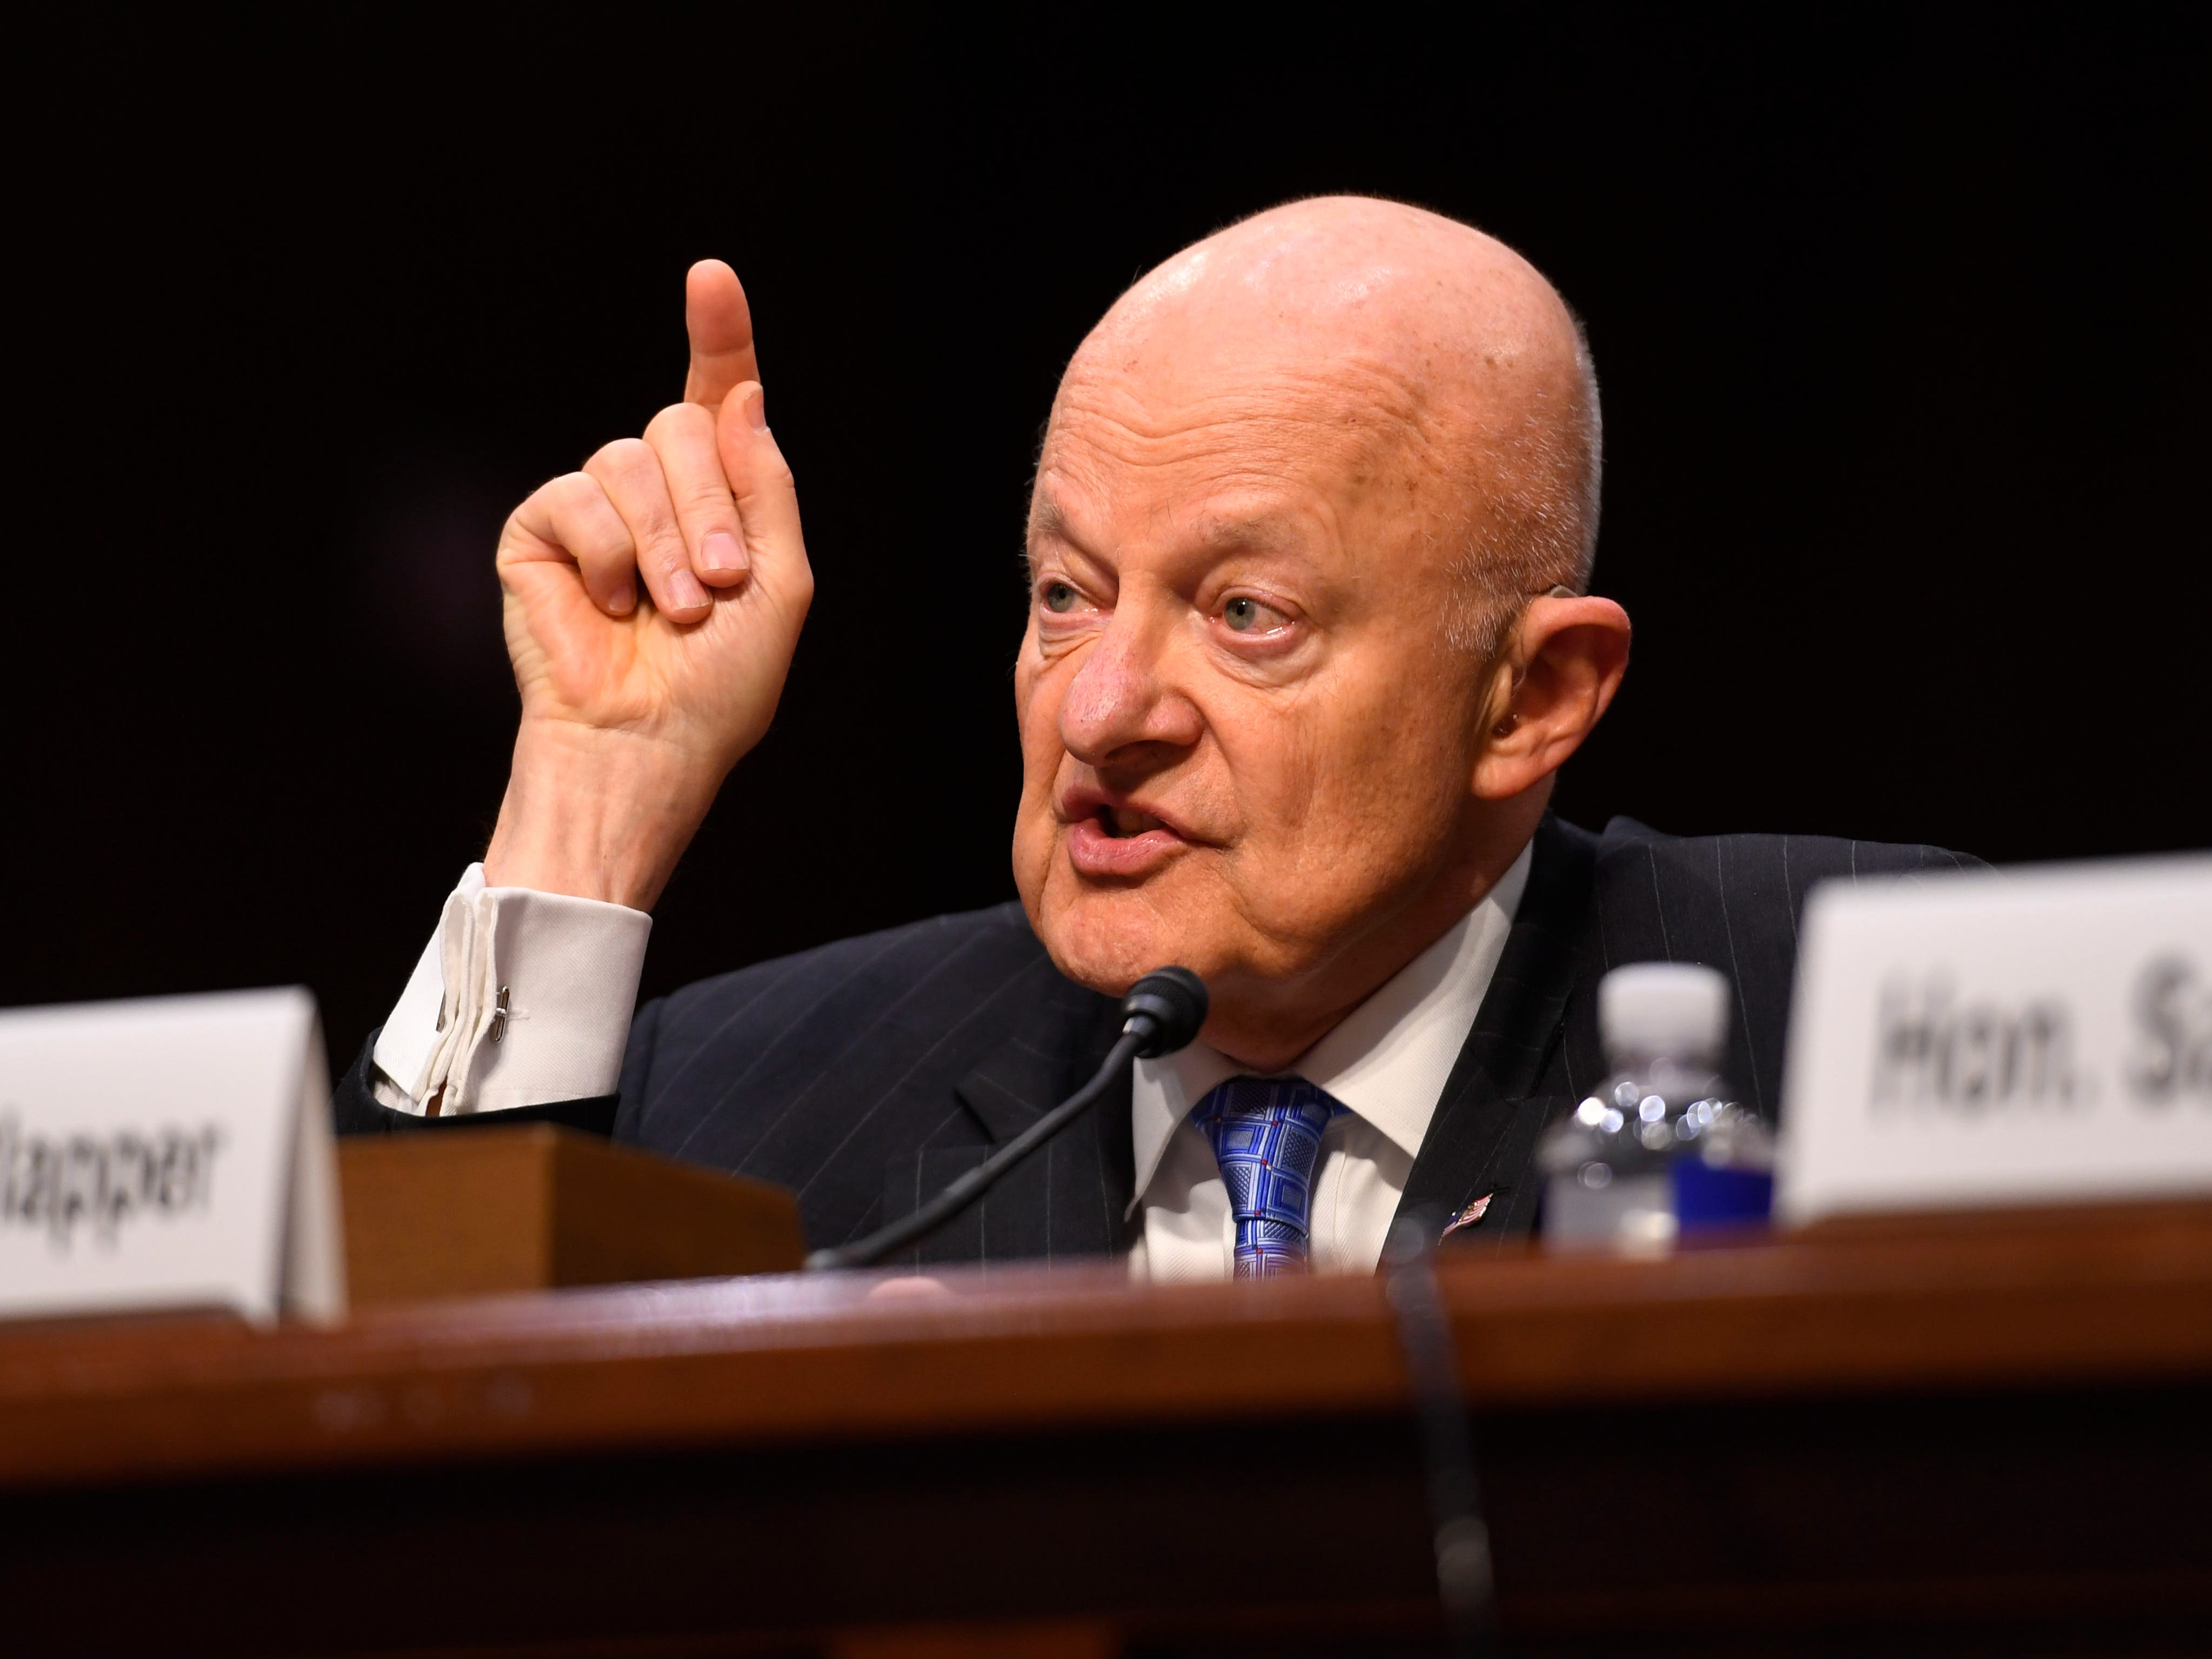 May 8, 2017; Washington, DC, USA; Former National Intelligence director James Clapper testifies on Capitol Hill before the Senate Judiciary subcommittee on Crime and Terrorism. Mandatory Credit: Jack Gruber-USA TODAY NETWORK ORIG FILE ID:  20170508_ajw_usa_090.jpg